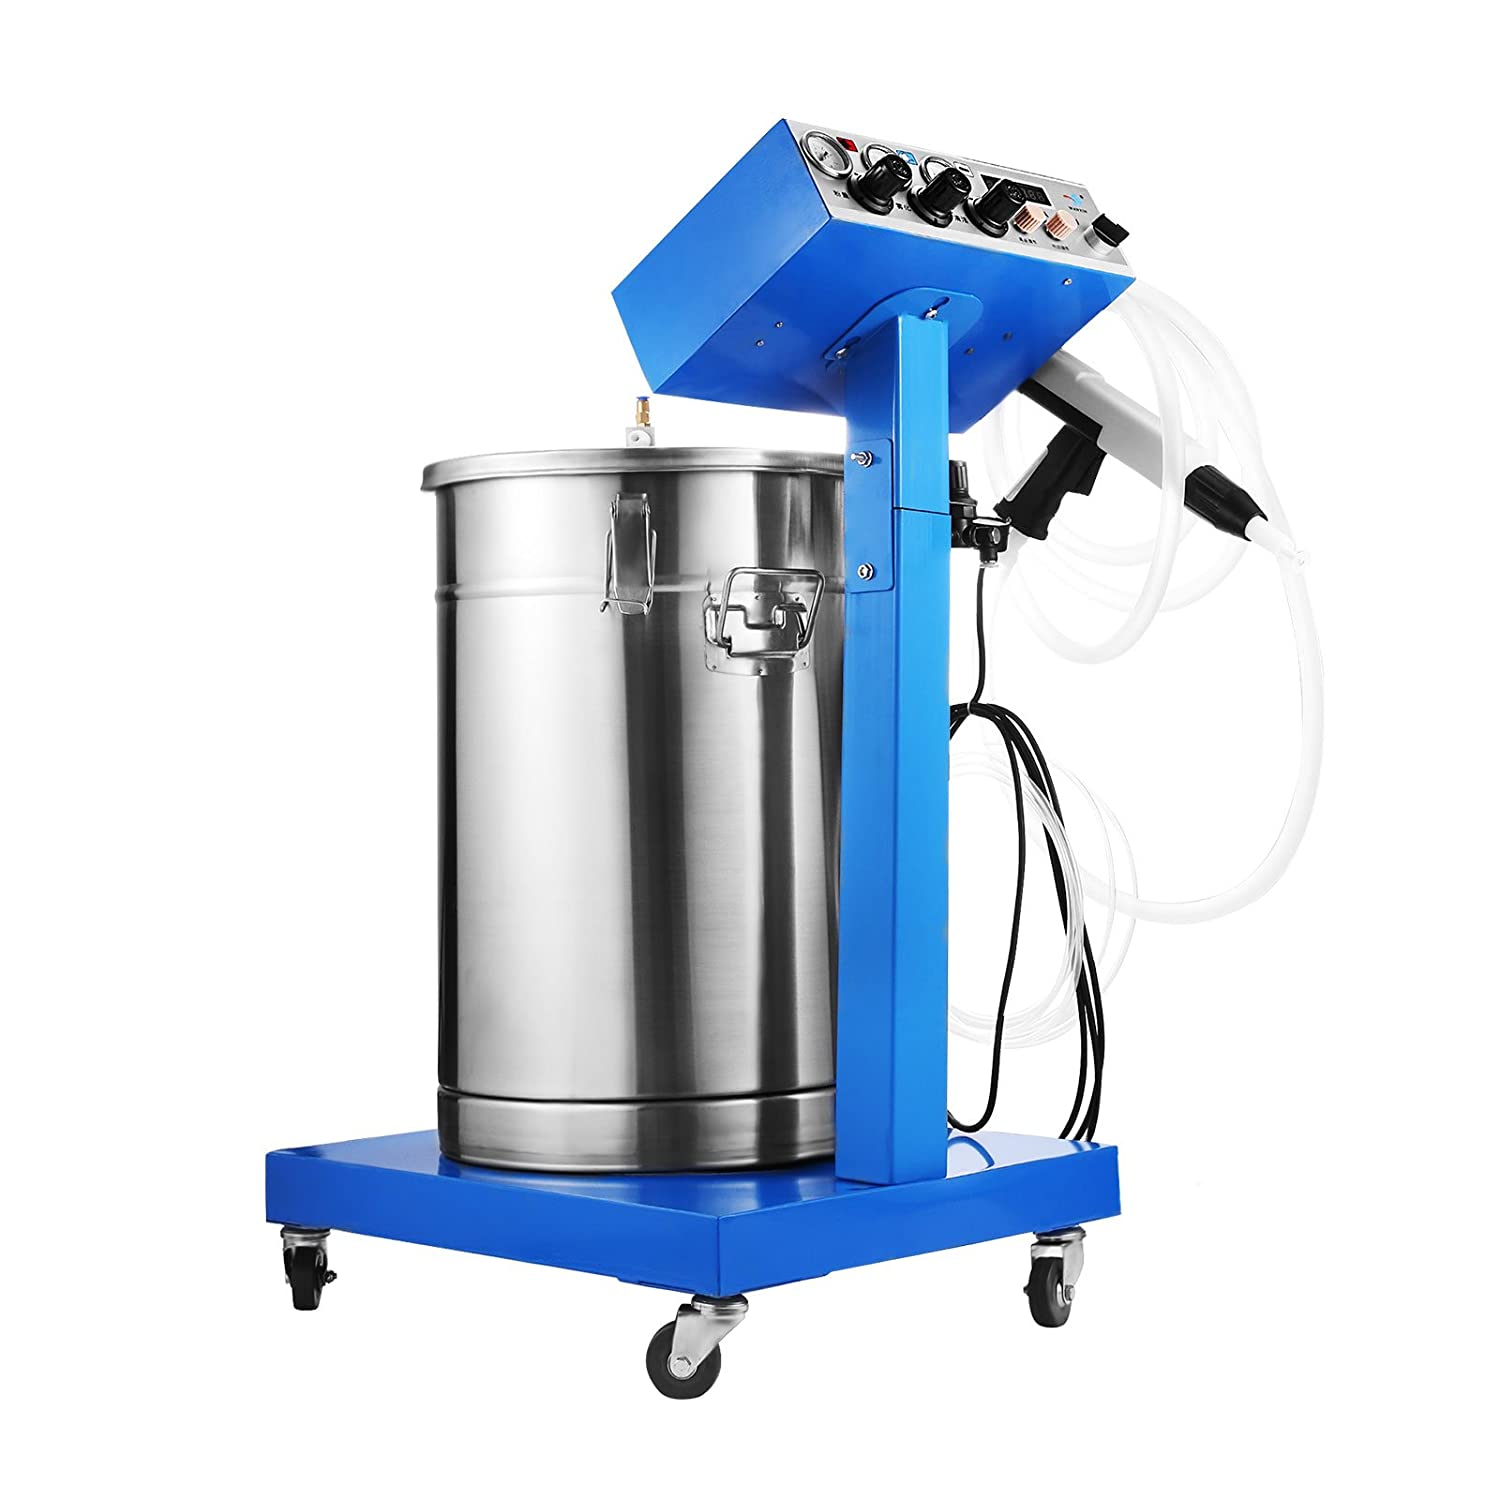 Mophorn Powder Coating Machine 50W 45L Capacity Electrostatic Powder Coating Machine Spraying Gun Paint 450g/min WX-958 Powder Coating System (50W 45L)